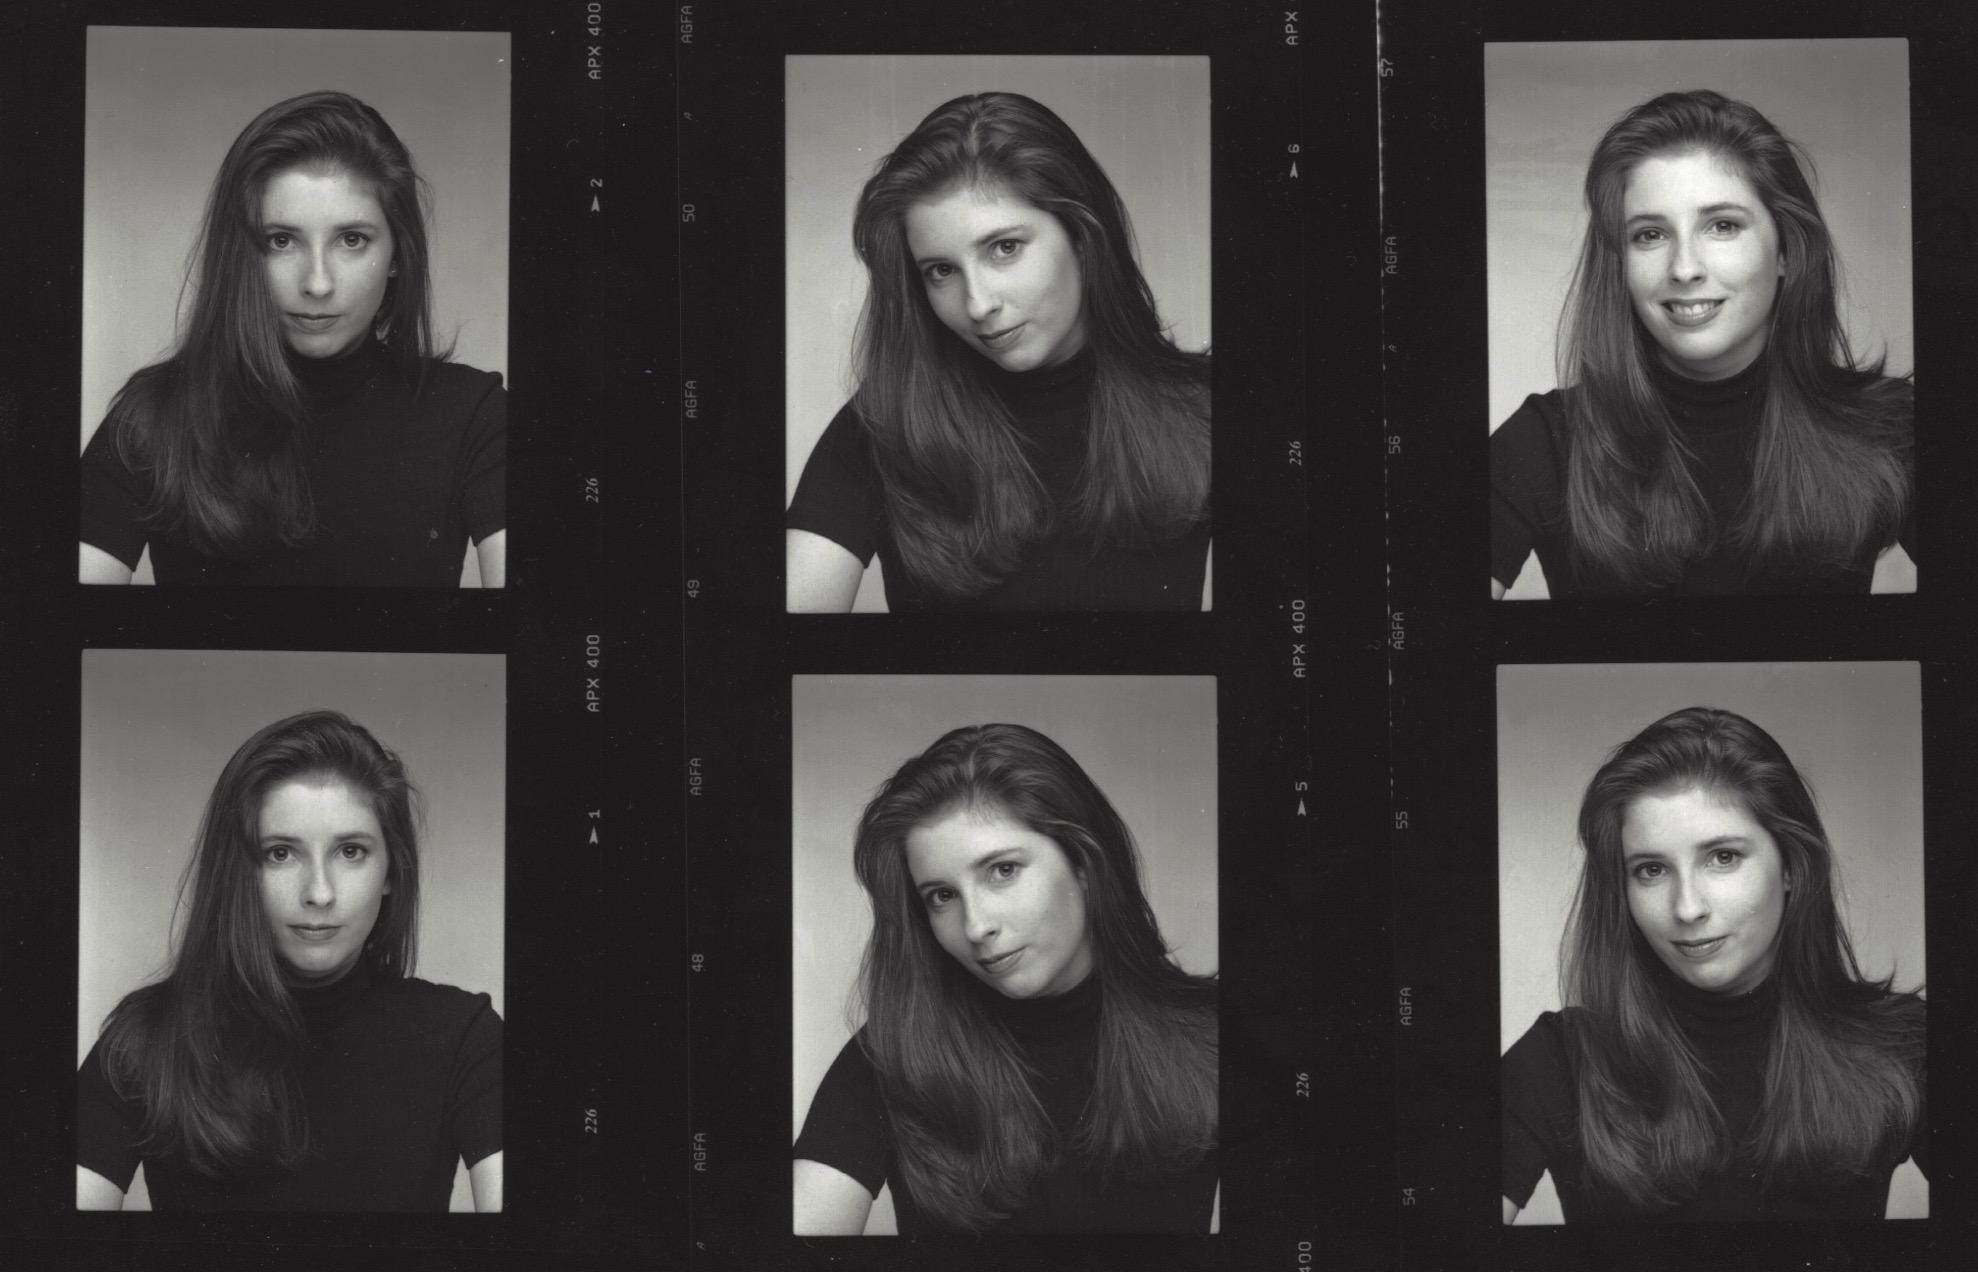 James J. Kriegsmann, Jr. Headshots, Patricia Steffy, Contact Sheet